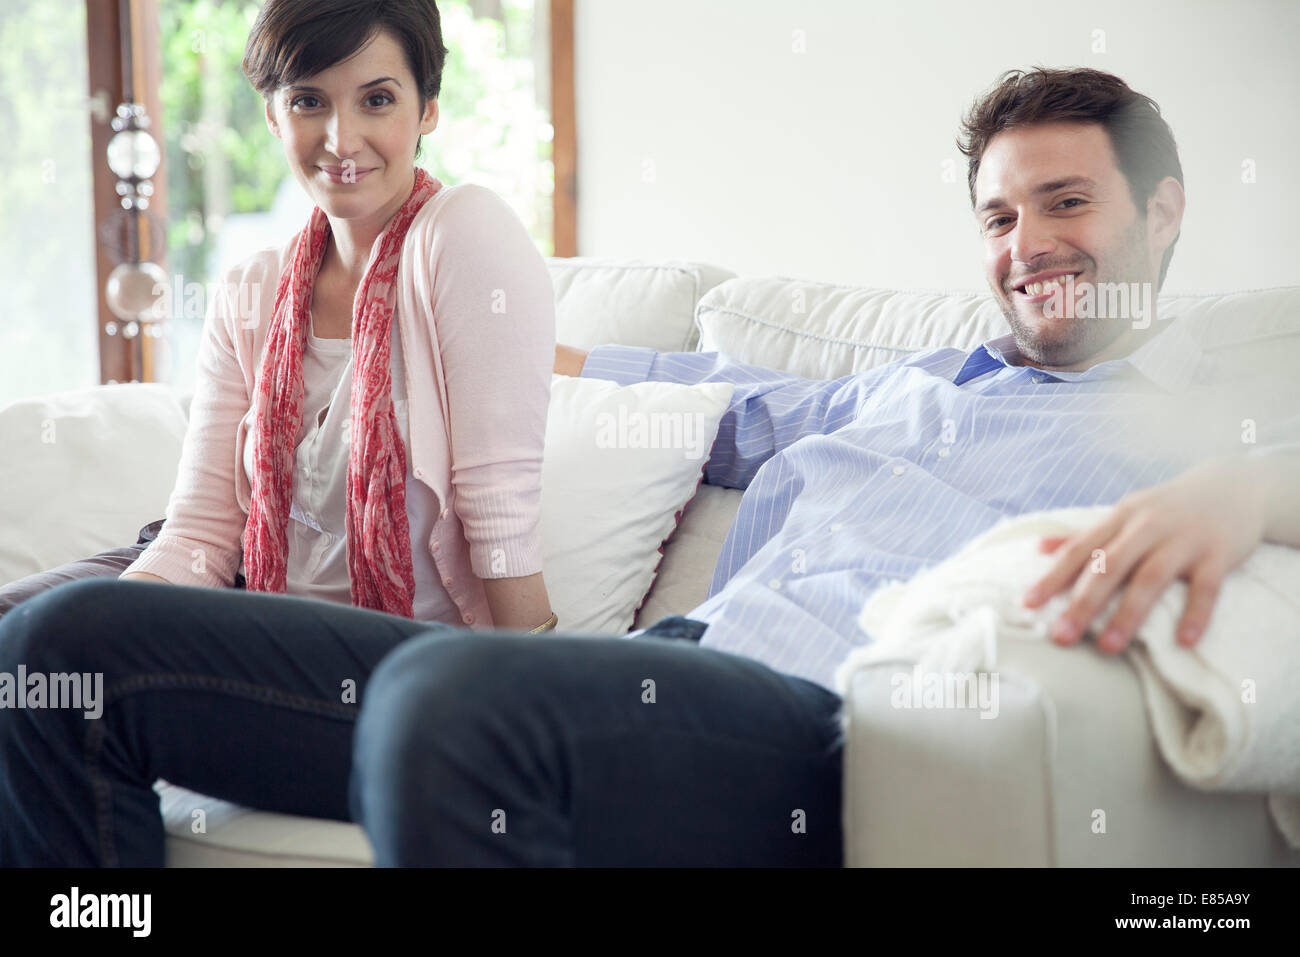 Couple relaxing on sofa at home Photo Stock